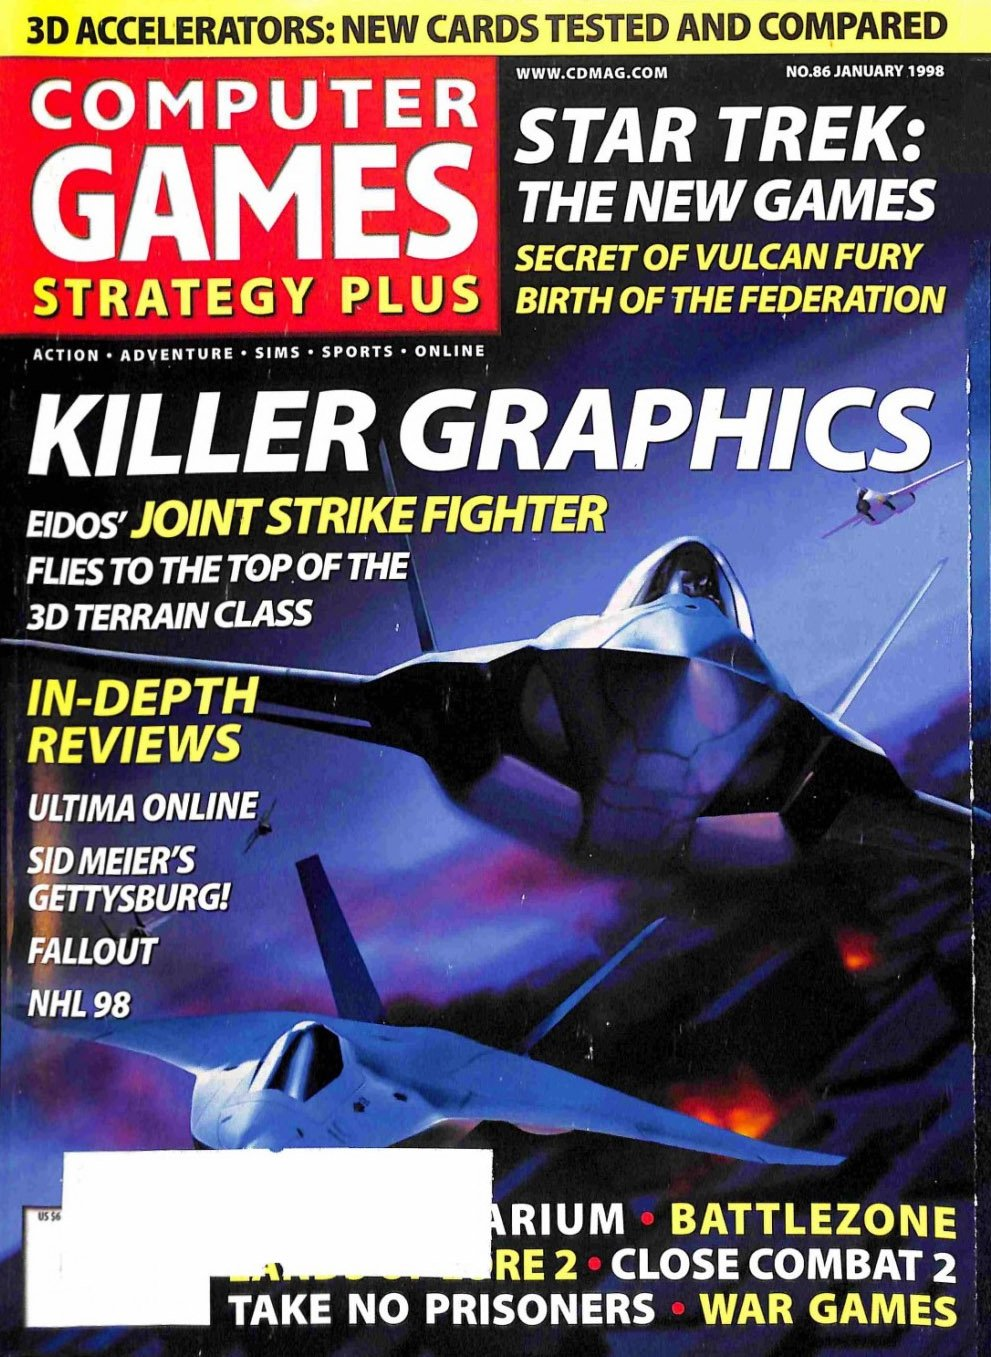 Computer Games Strategy Plus Issue 086 (January 1998)